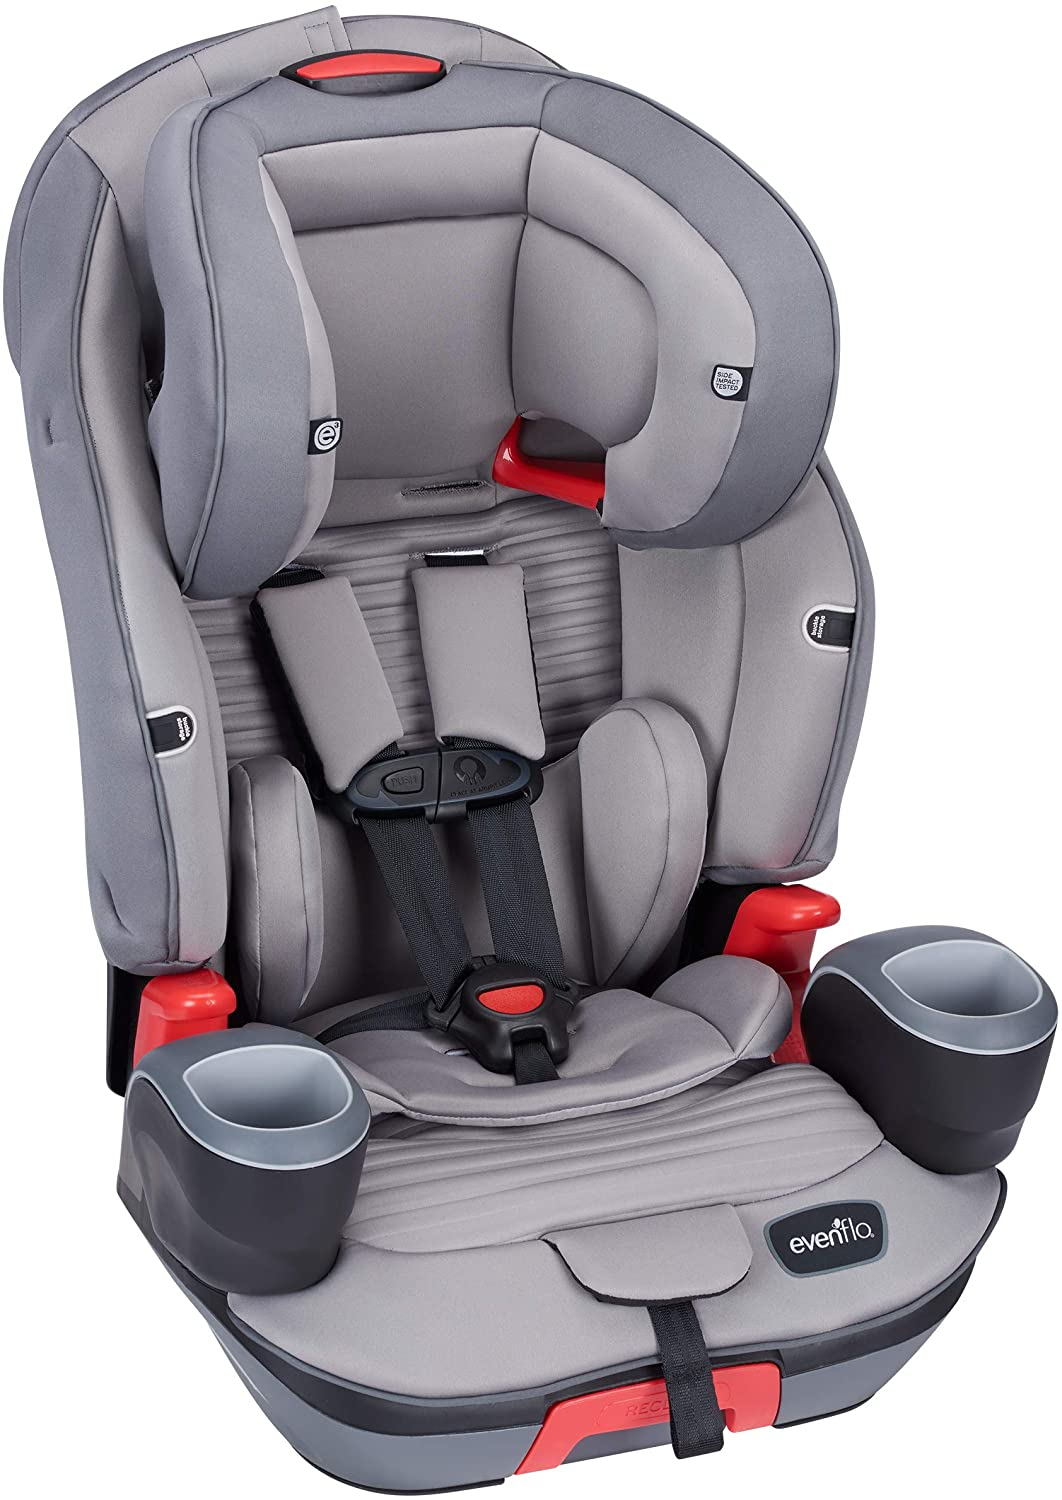 Evenflo Evolve Platinum 3 In 1 All In One Combination Child Children Kids Baby Infant Car Seat Chair Booster Seat Charcoal Stripe Lazada Singapore